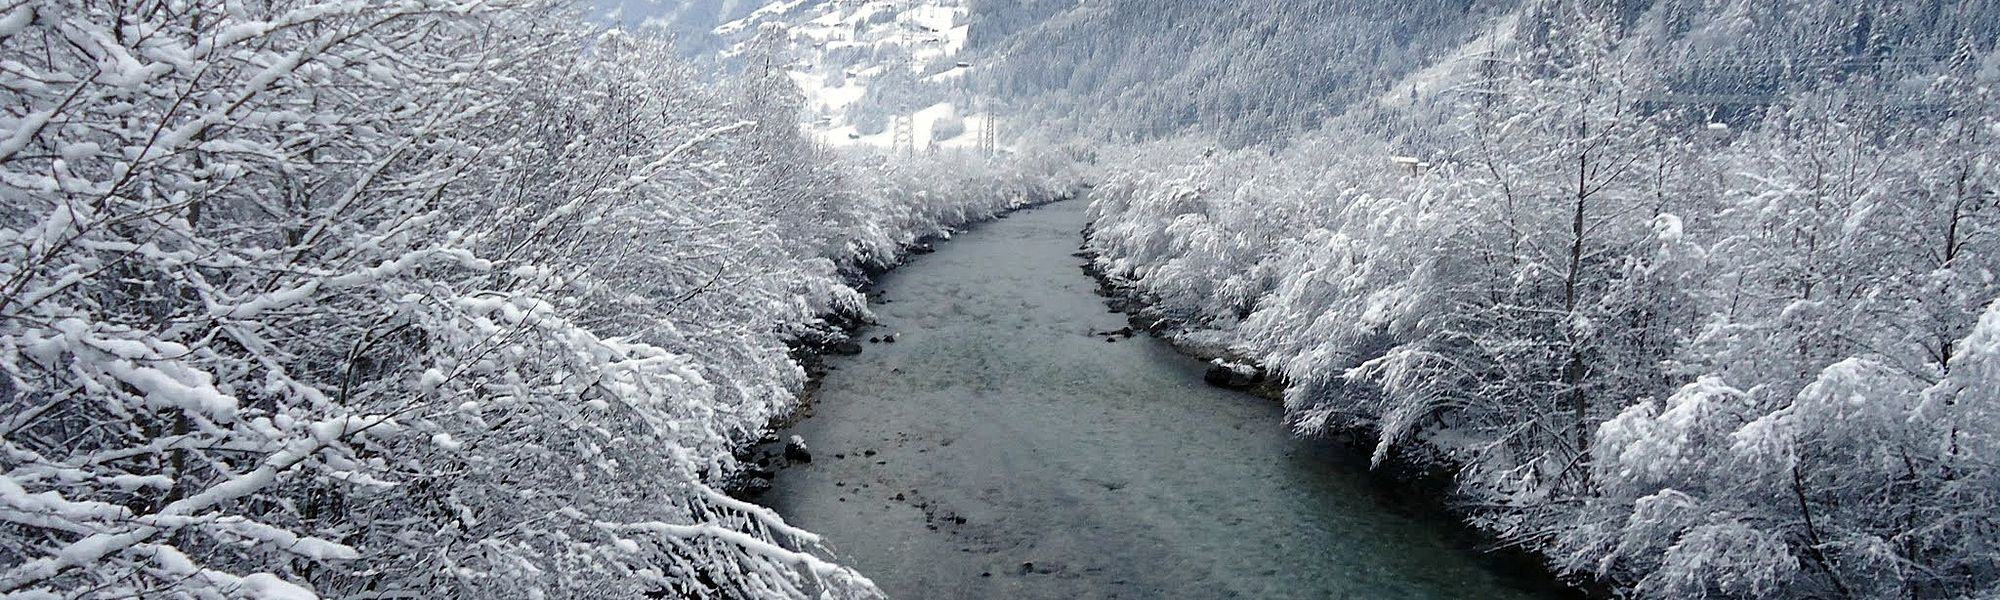 The Zillertal in winter